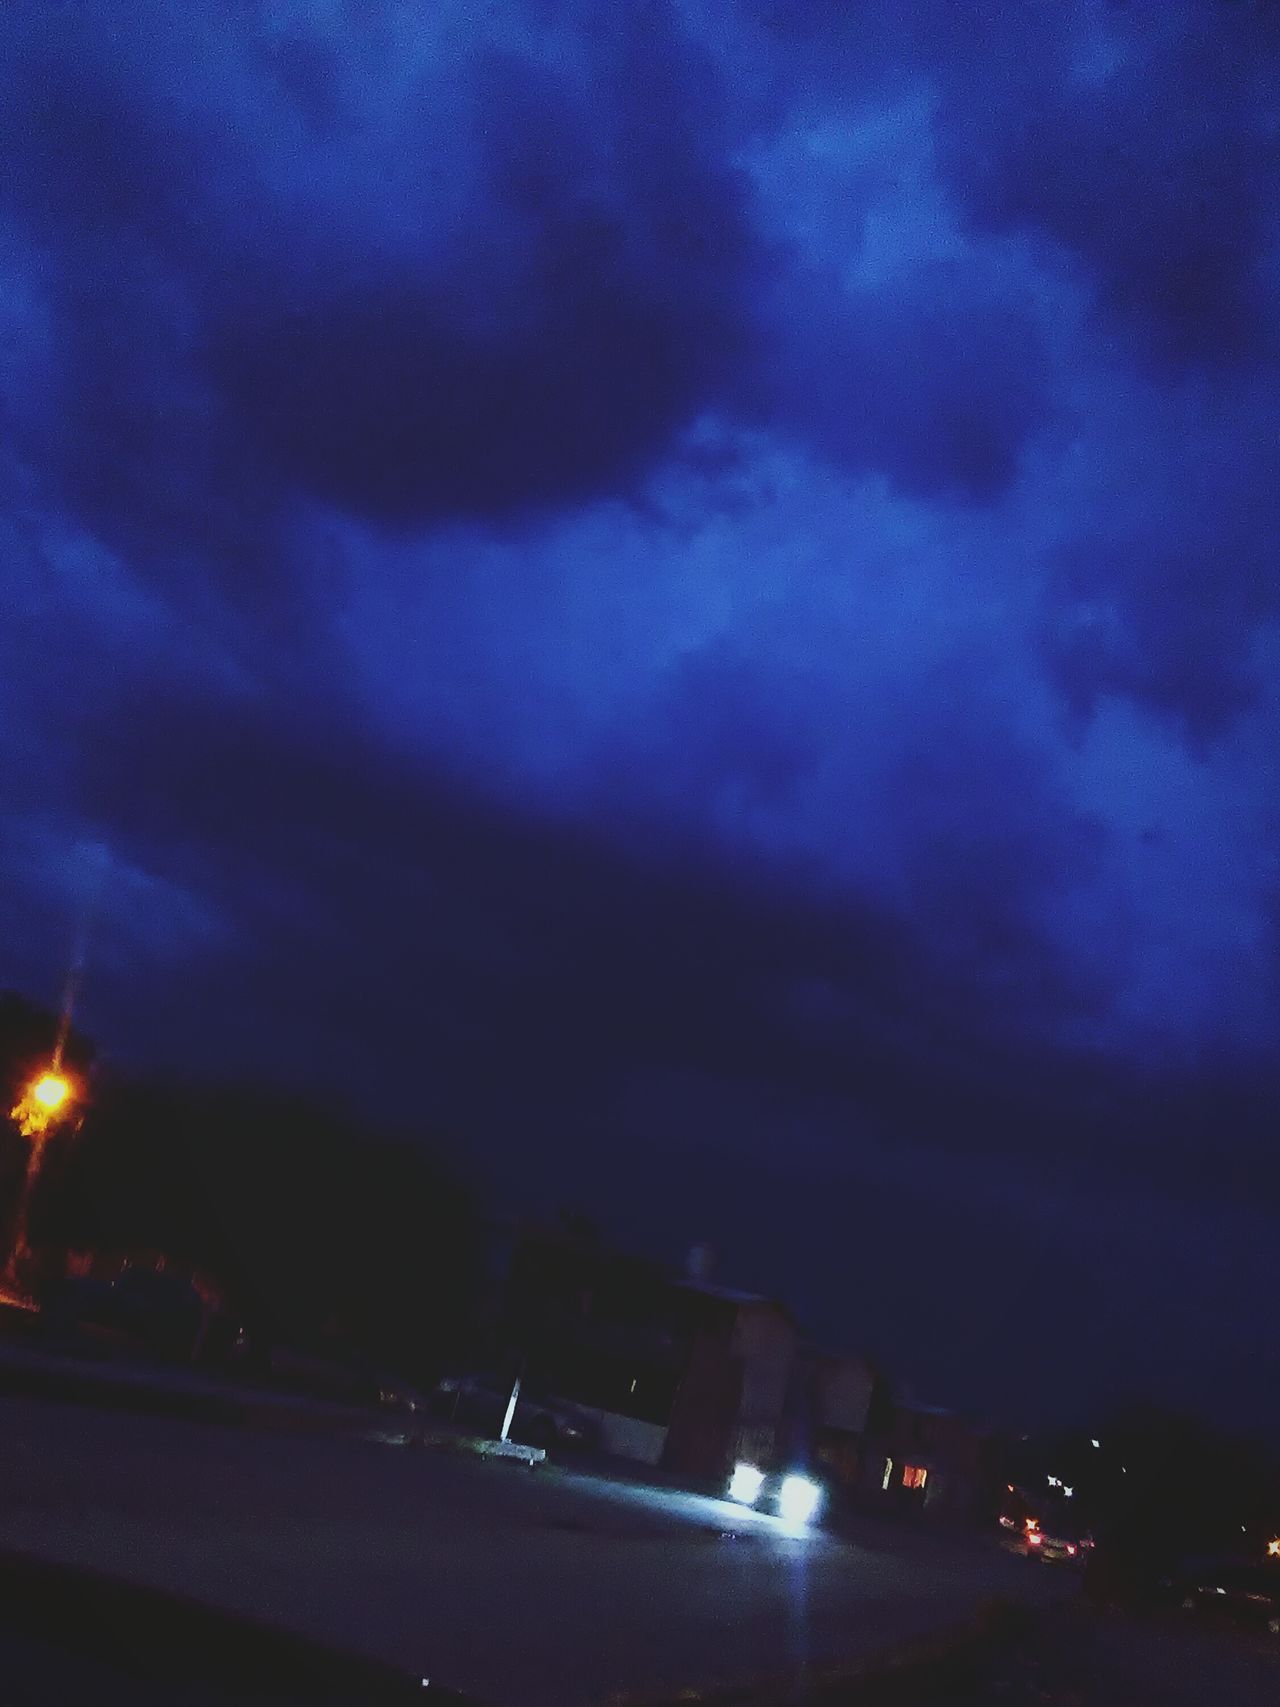 Sky Night Nightphotography Rain Rainy Days Mexico Monclova Coahuila, México Photography Nature Blue Sky Blue